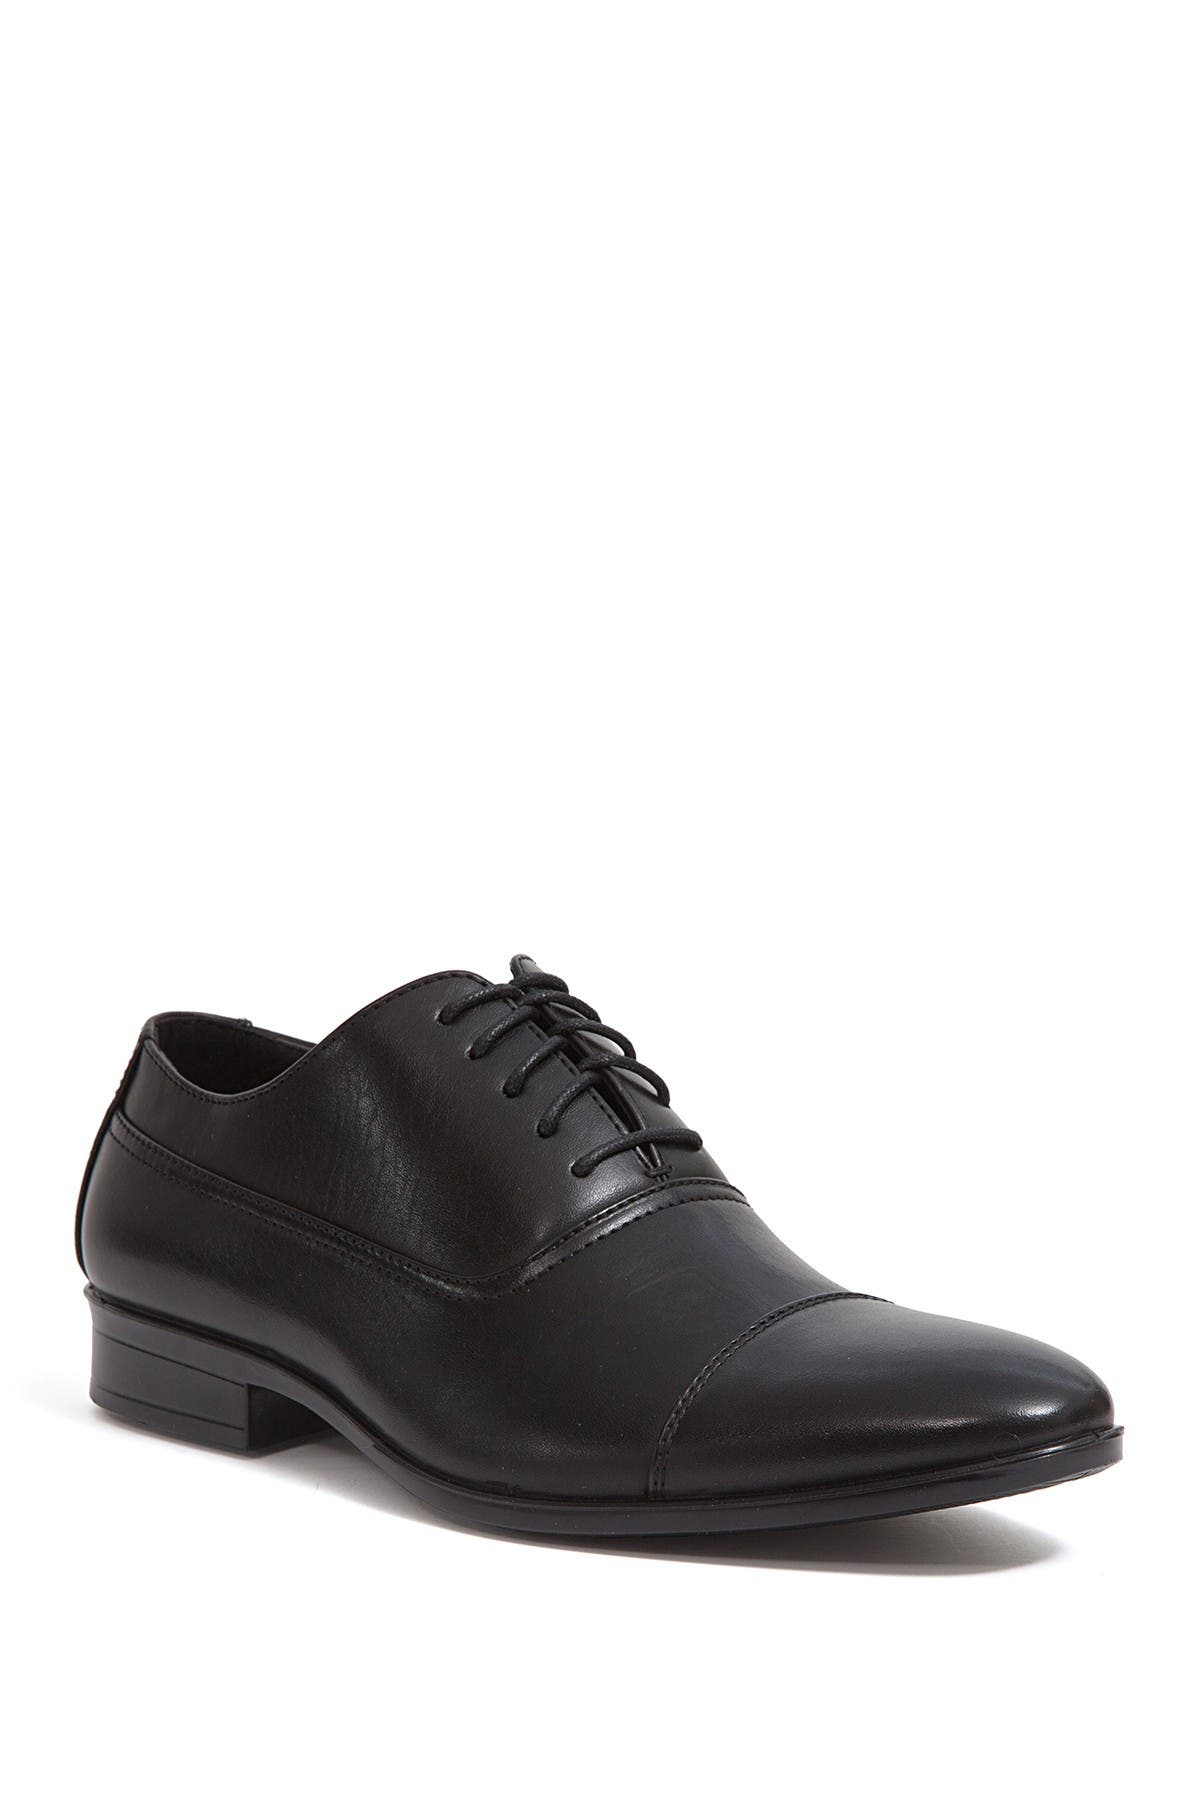 Image of Deer Stags Townsend Faux Leather Oxford